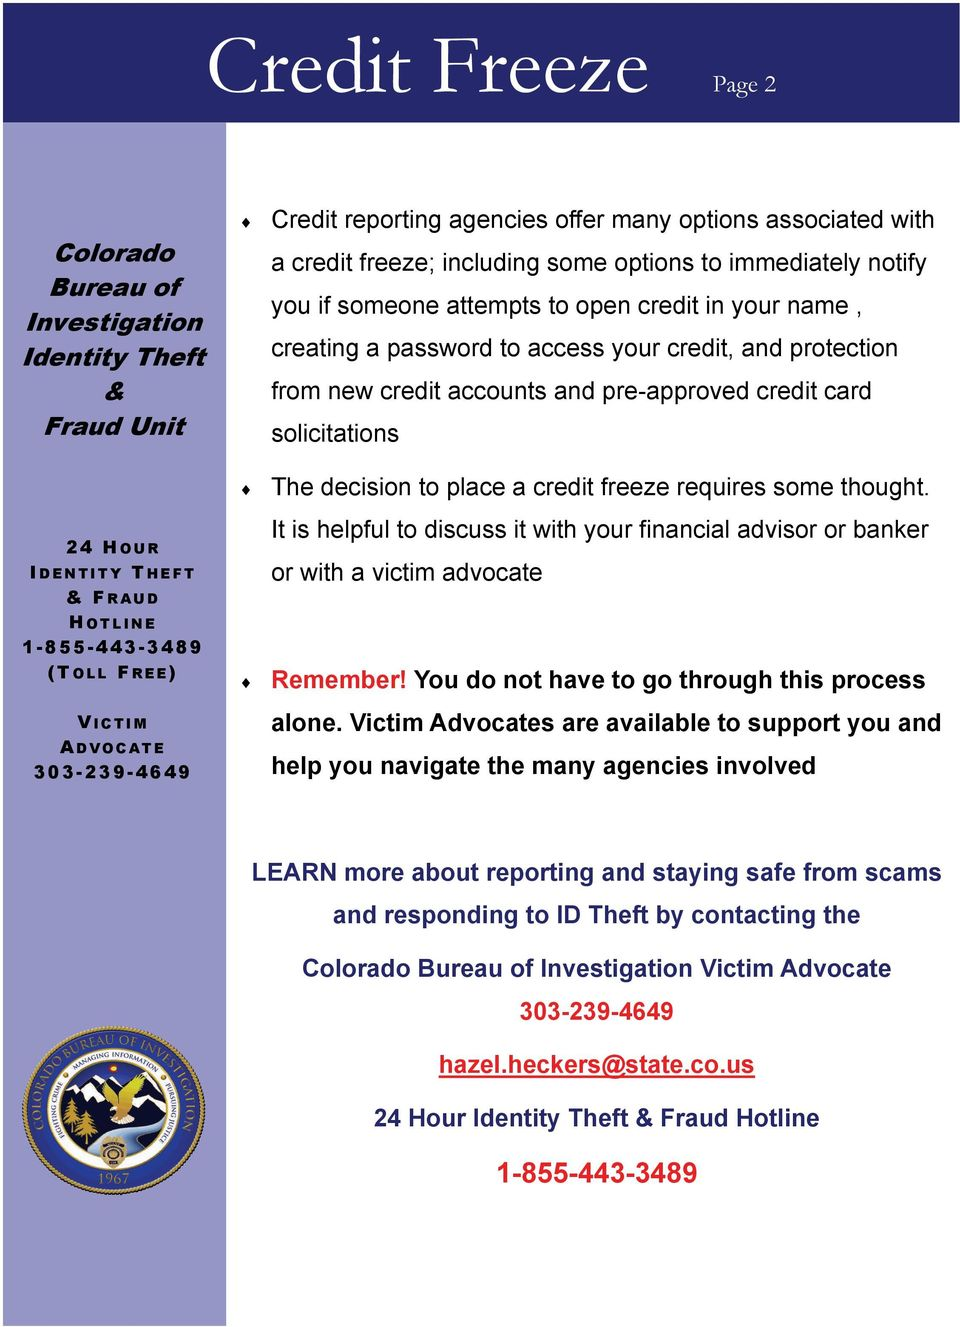 DENTITY THEFT & FRAUD H OTLINE 1-855-443-3489 (TOLL FREE) V ICTIM A DVOCATE 303-239-4649 The decision to place a credit freeze requires some thought.